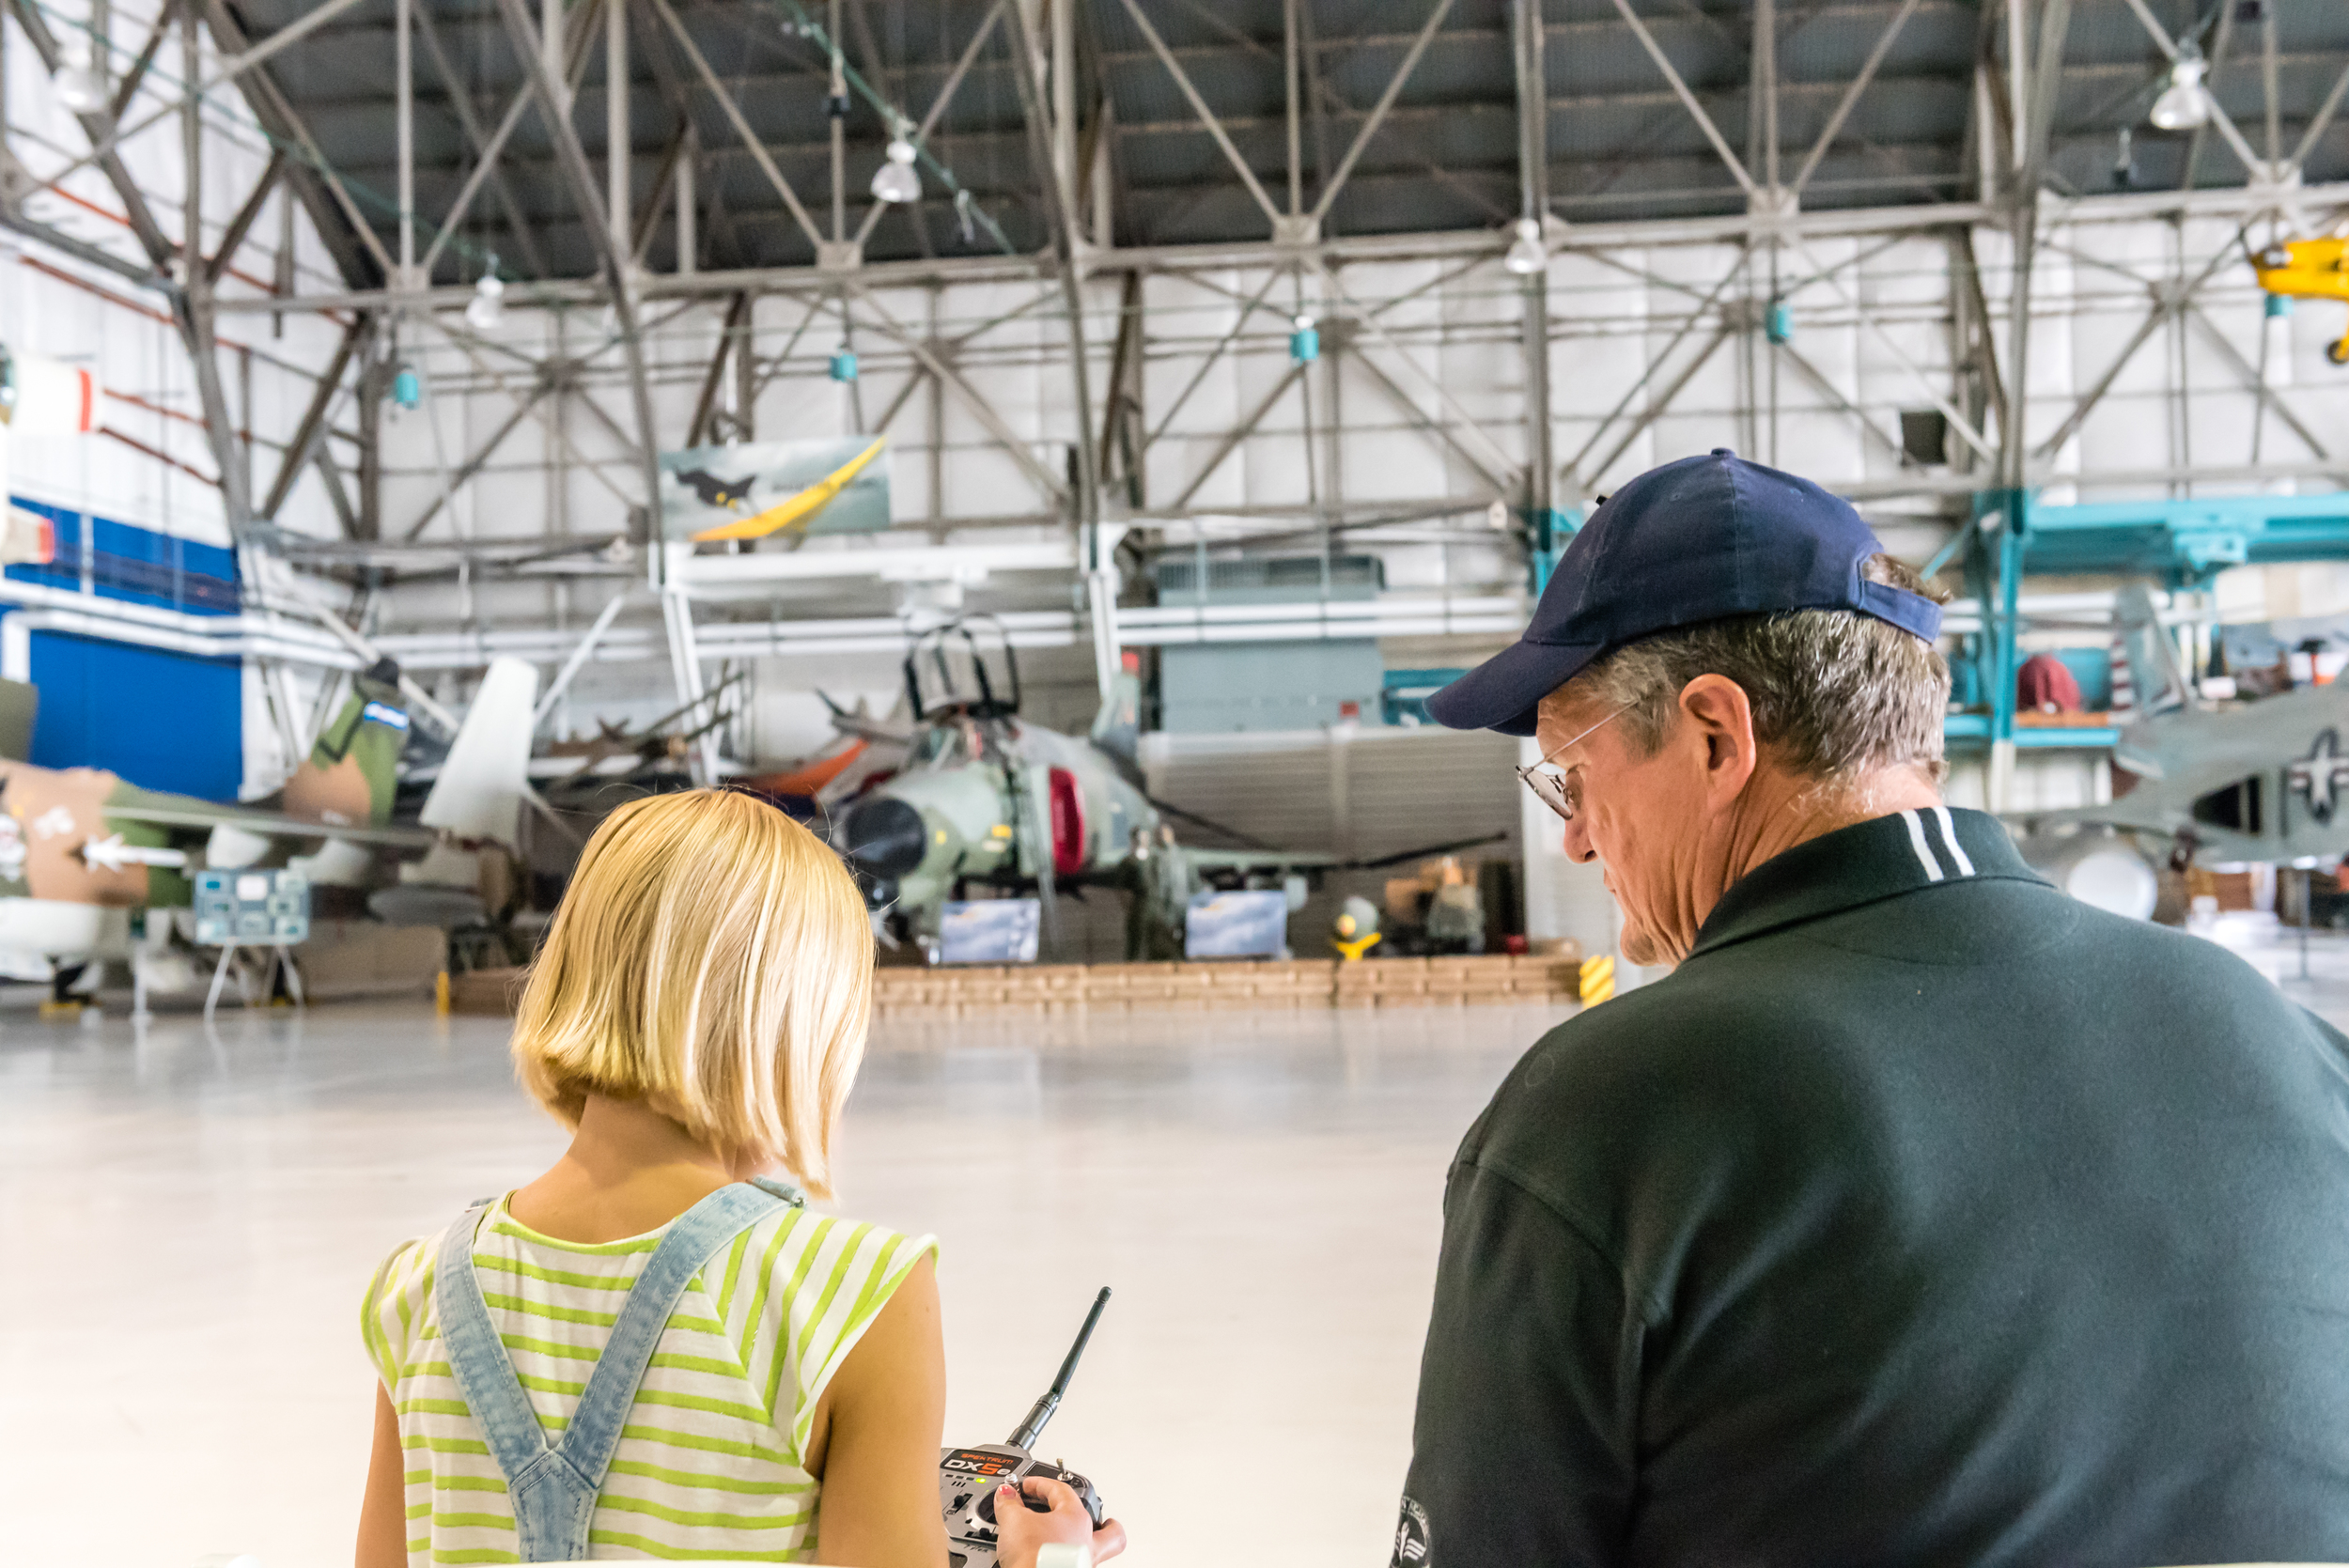 6/Wings Over the Rockies Air & Space Museum